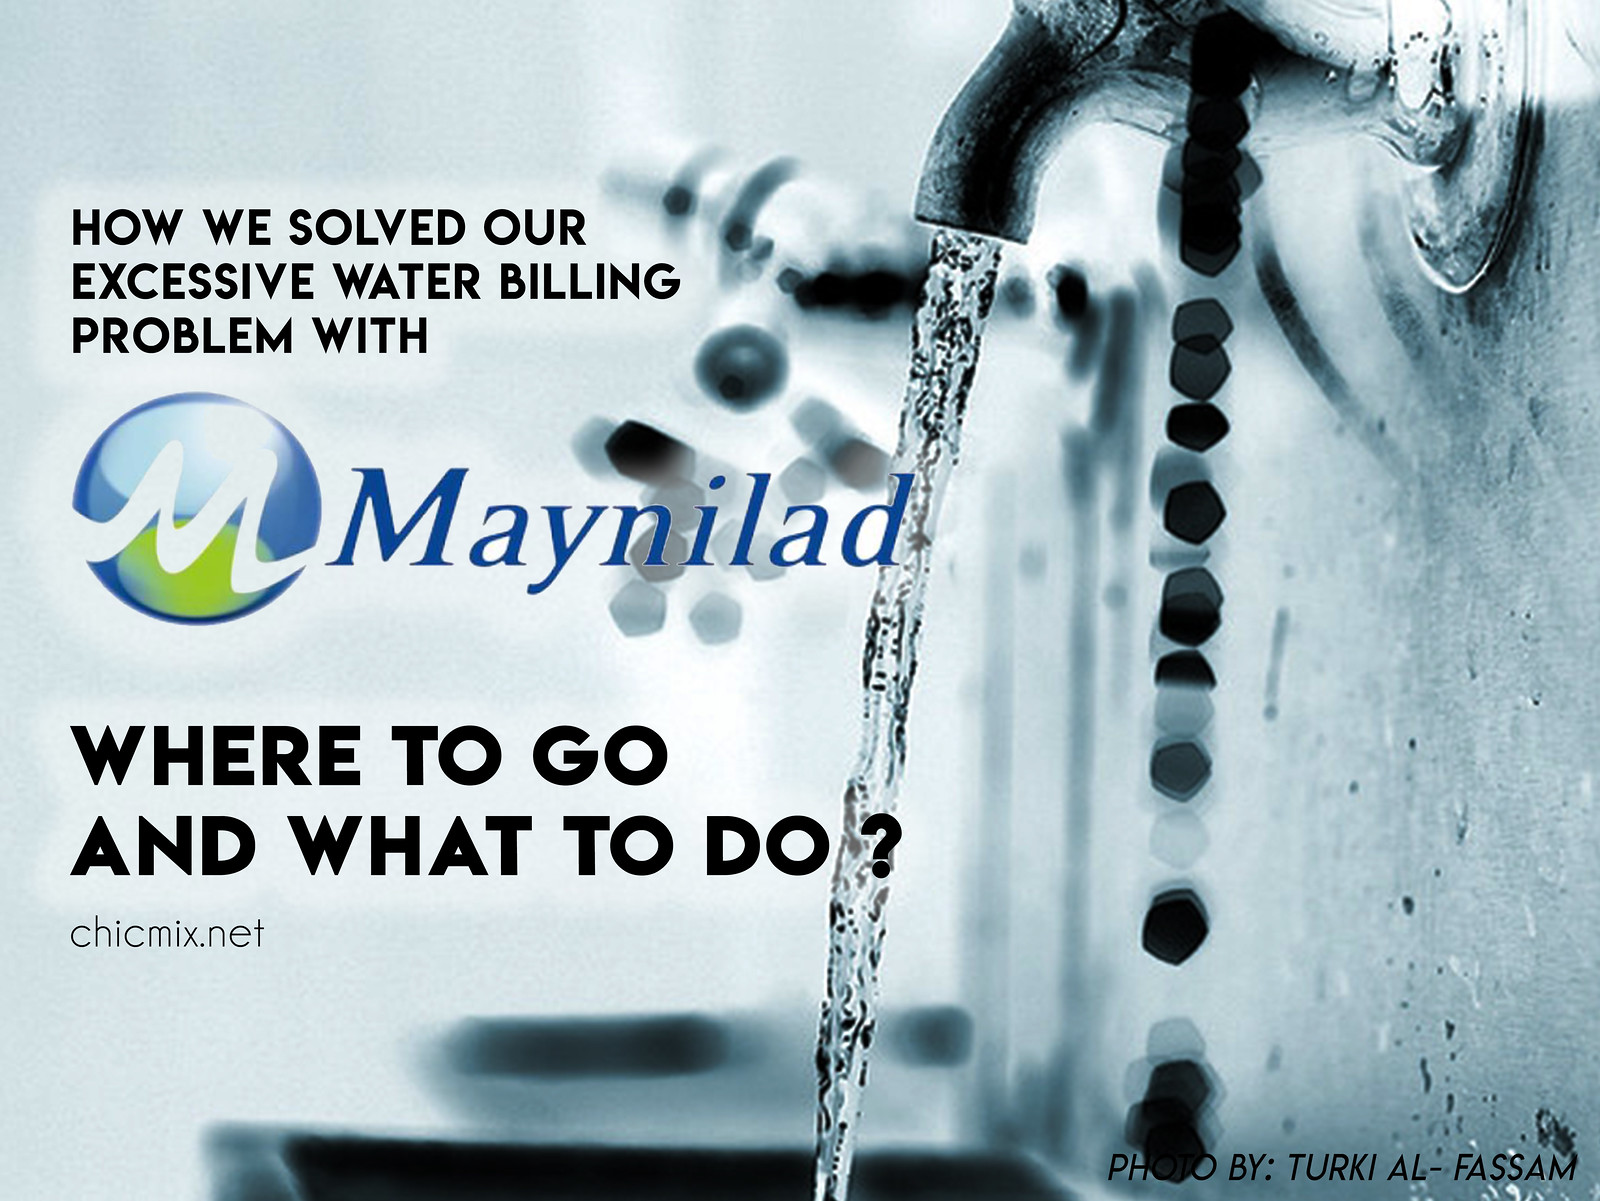 How We Solved Our Excessive Water Billing With Maynilad (Where To Go and What To Do)